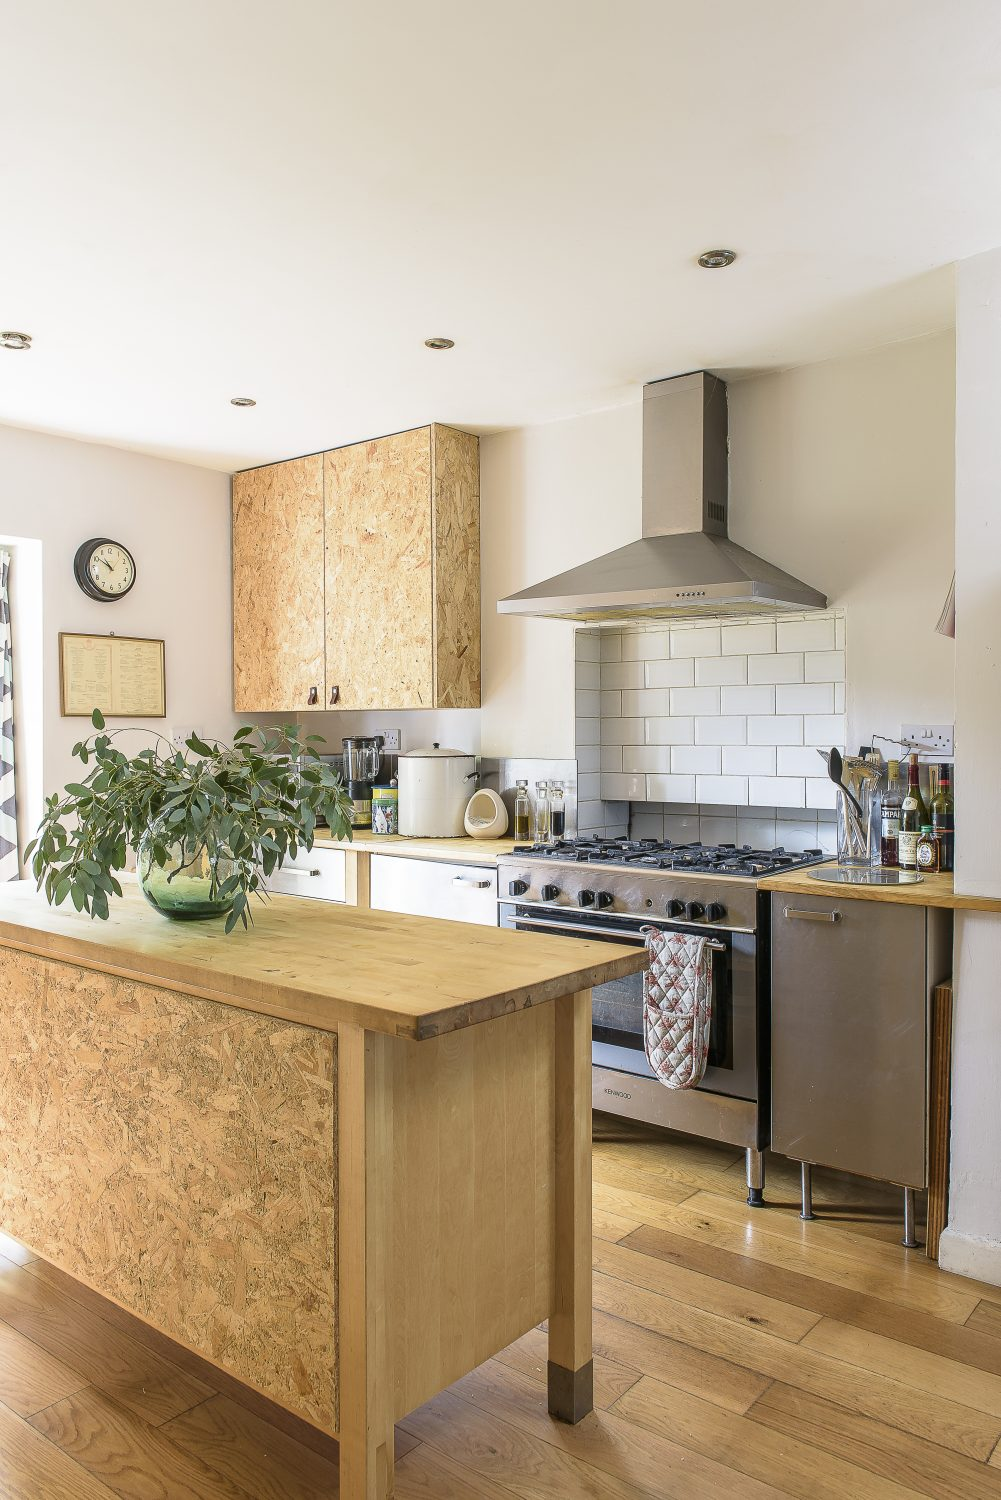 Jules and Ollie decided to keep the IKEA kitchen that was in place when they bought the house, upgrading it to suit their taste with the addition of doors made from OSB.